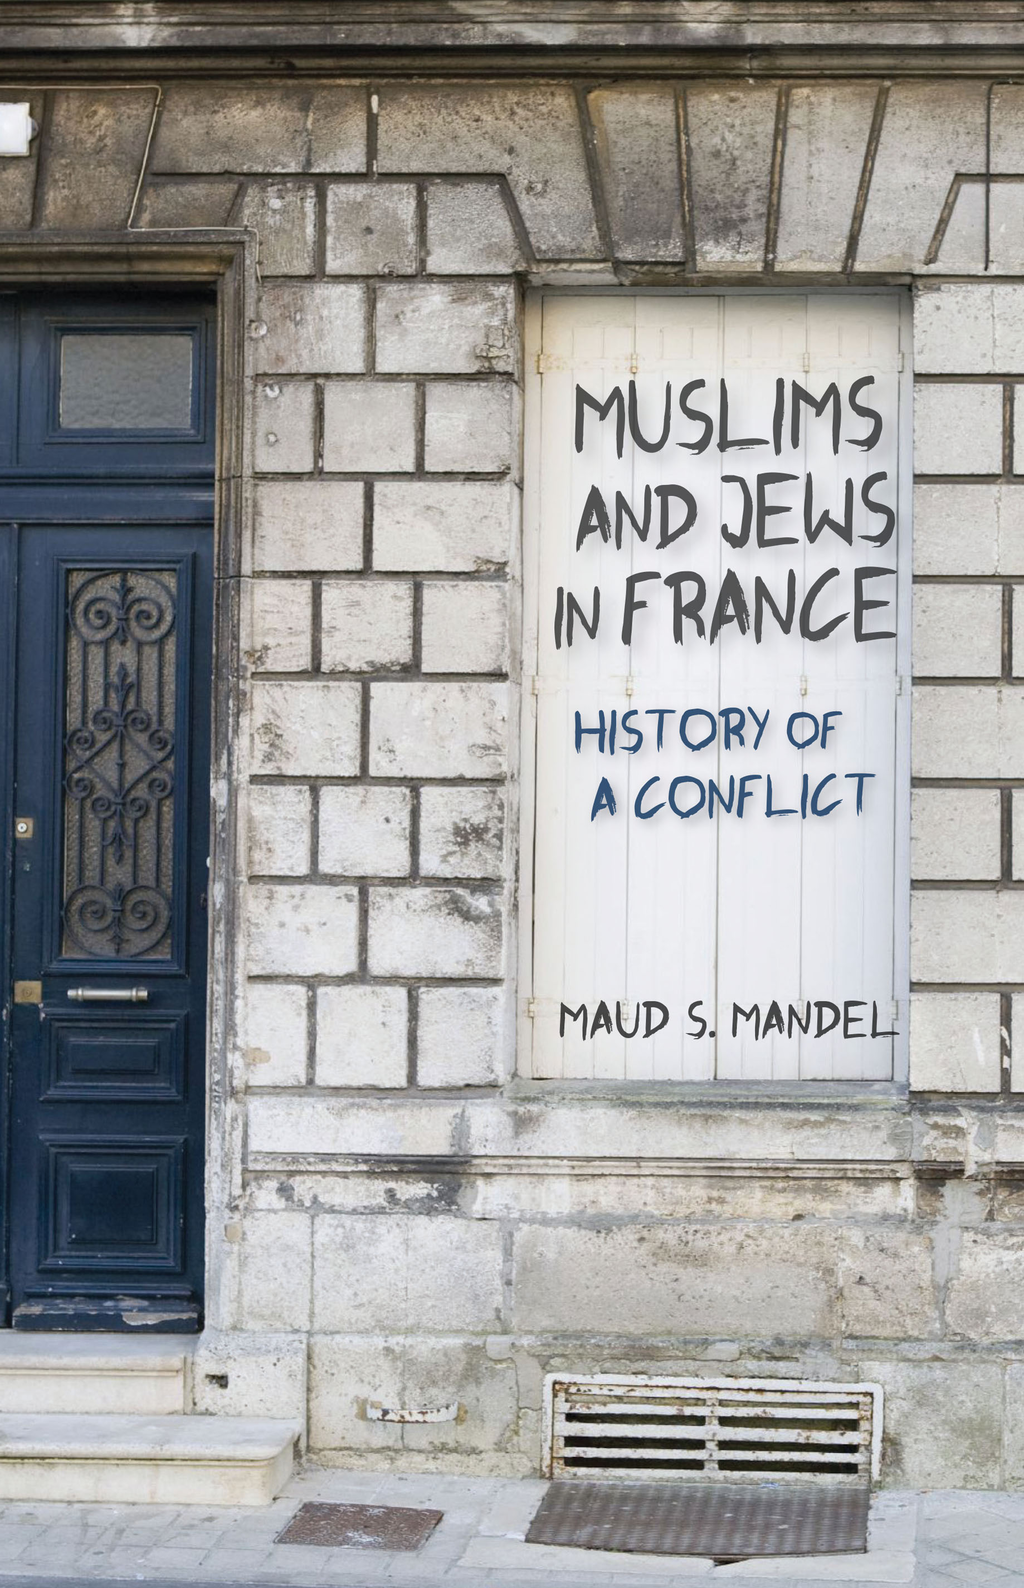 Muslims and Jews in France History of a Conflict